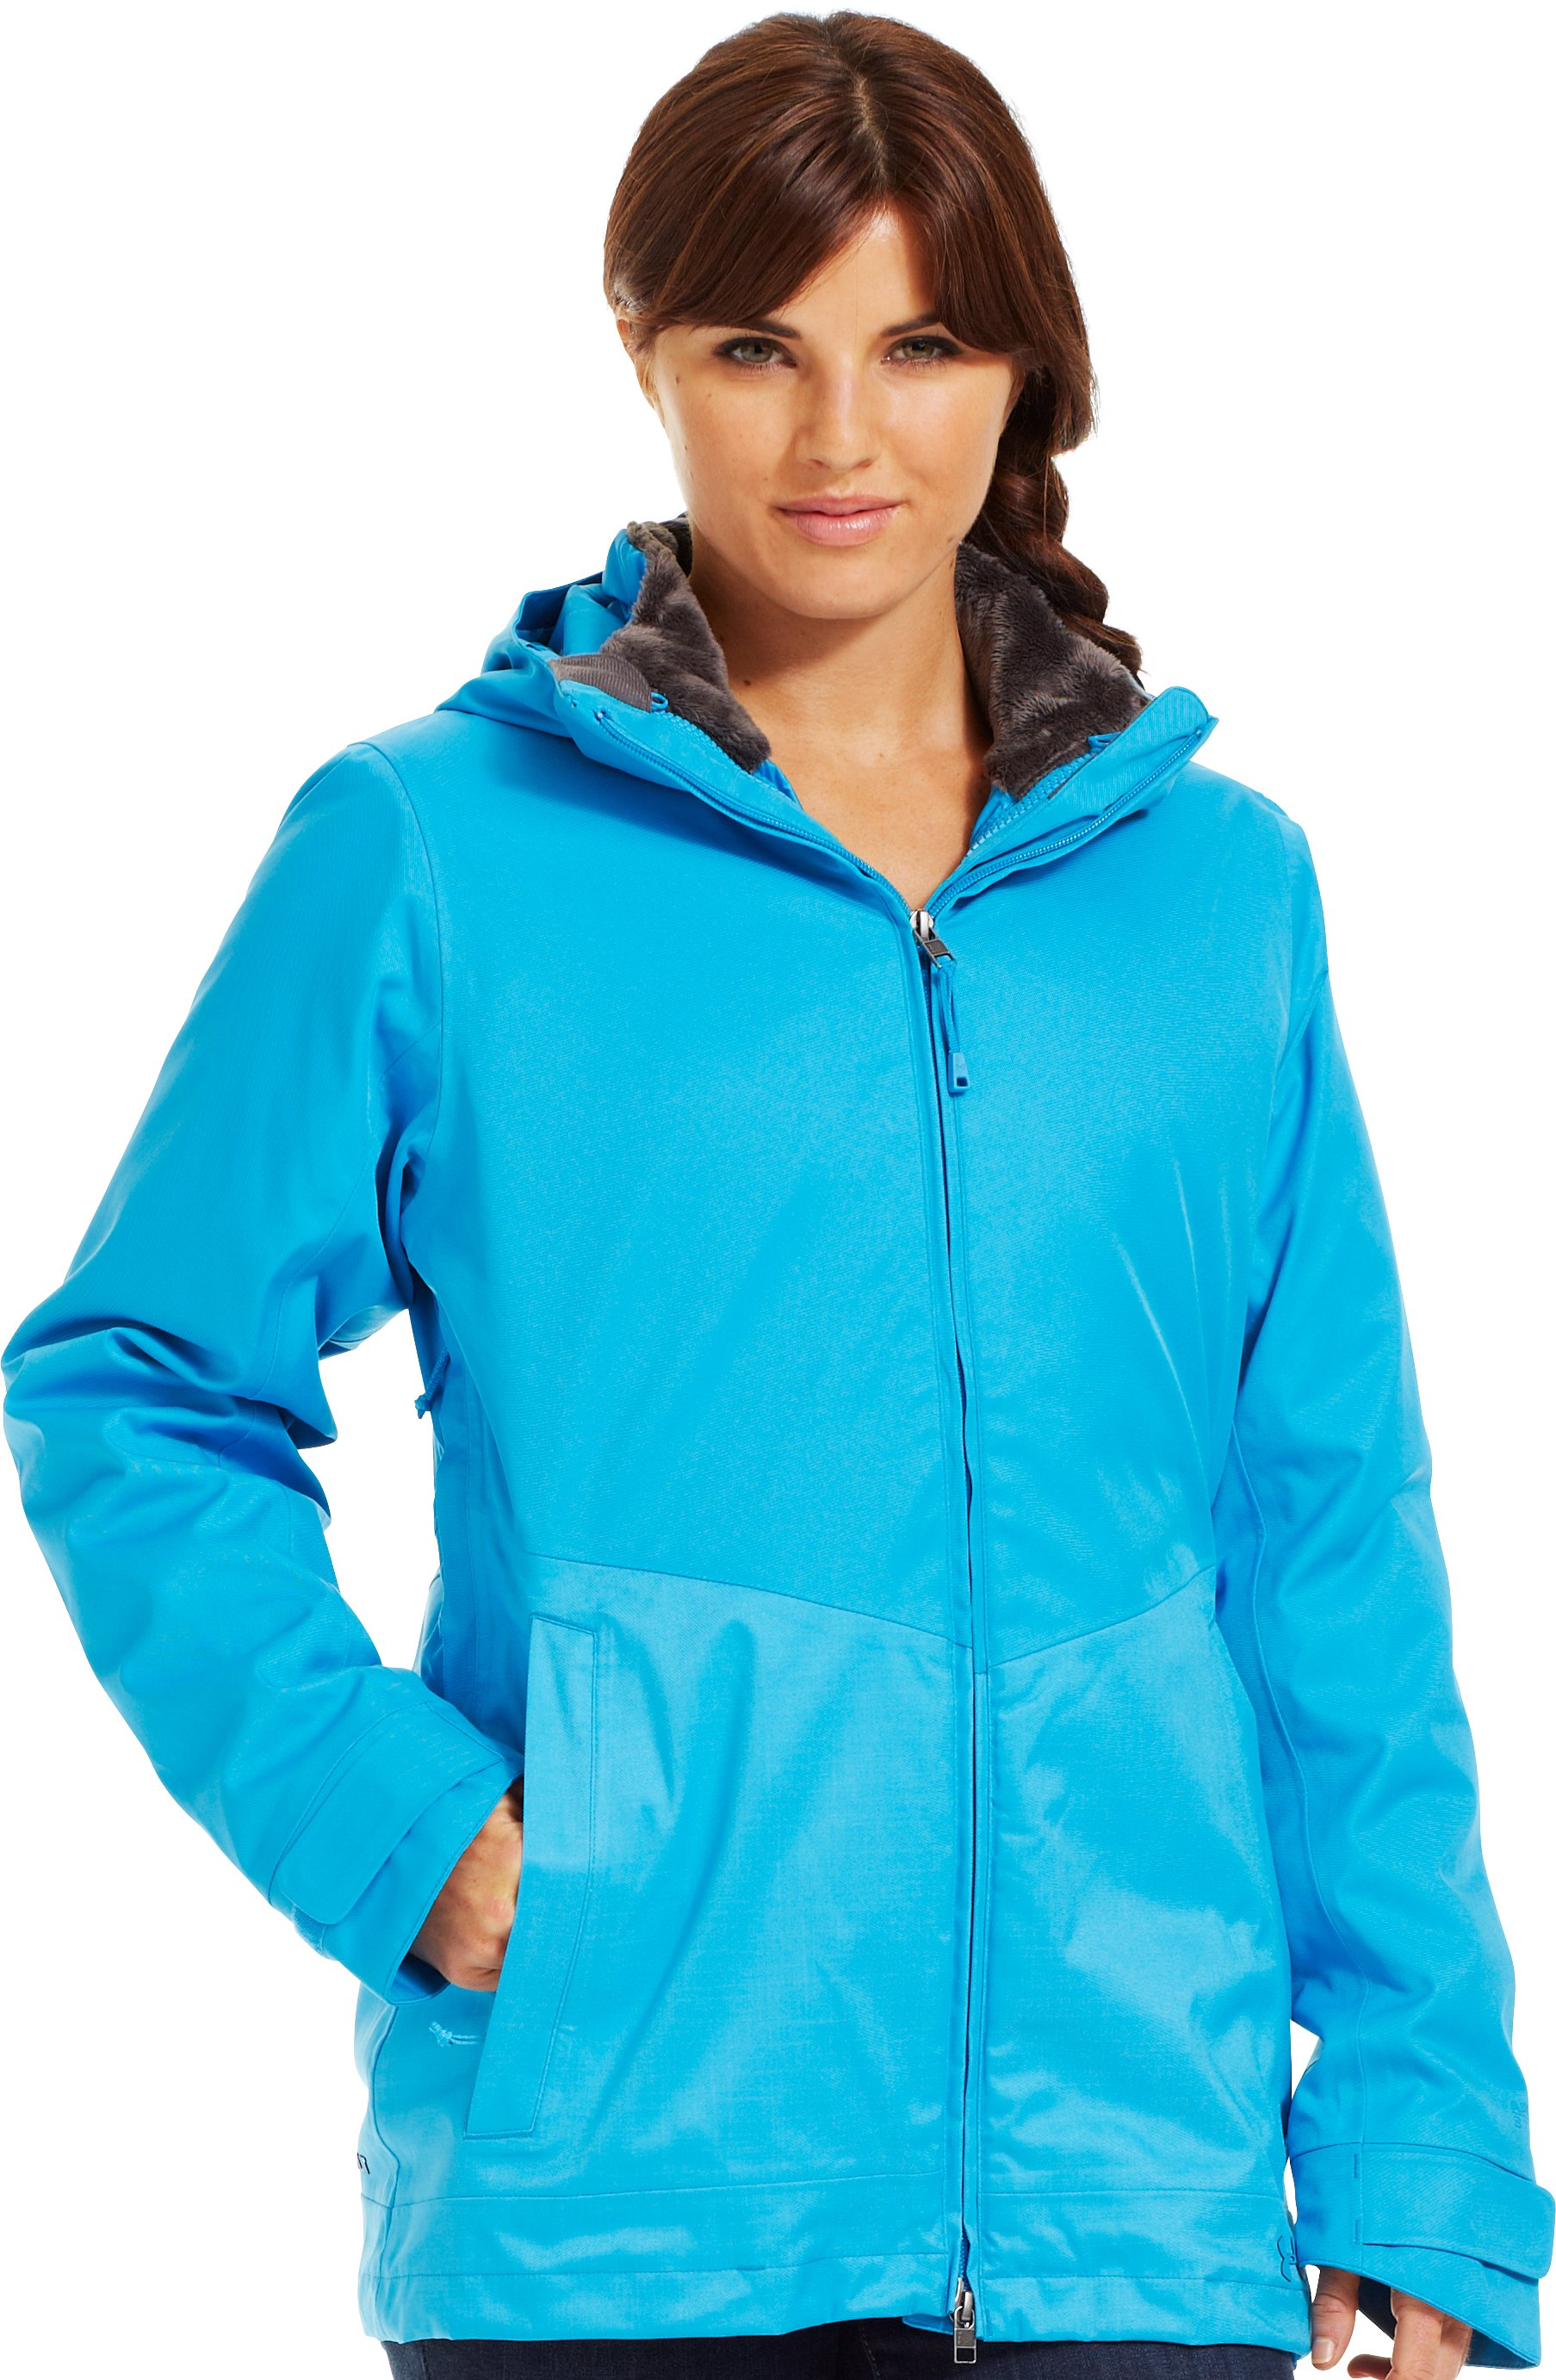 Women's ColdGear® Infrared Cindy 3-In-1 Jacket, Crown Jewel, Front